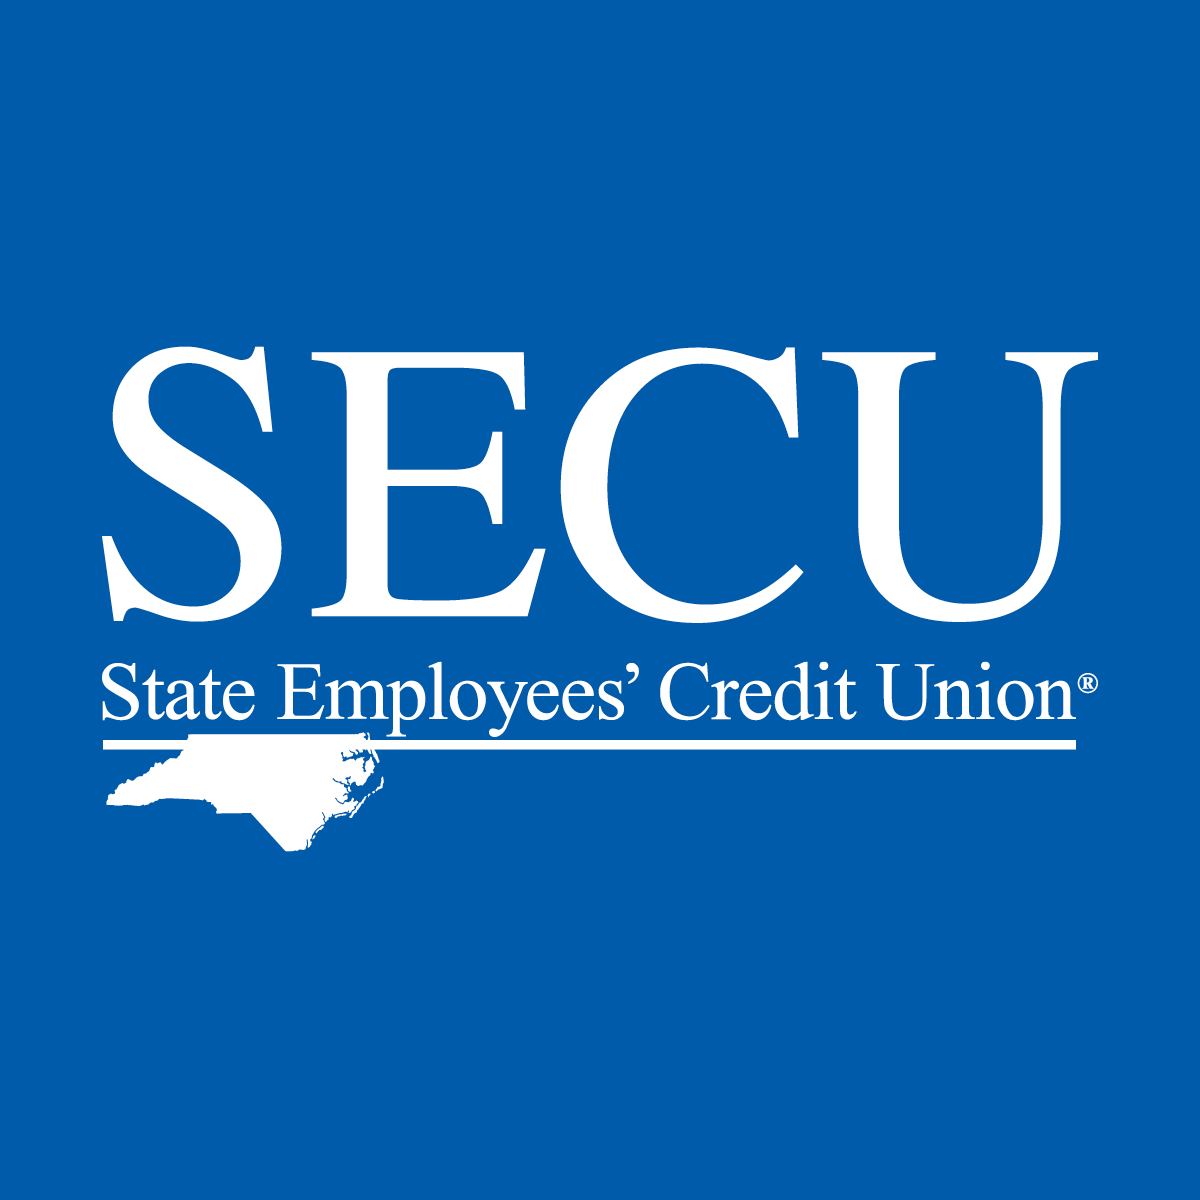 State Employees' Credit Union